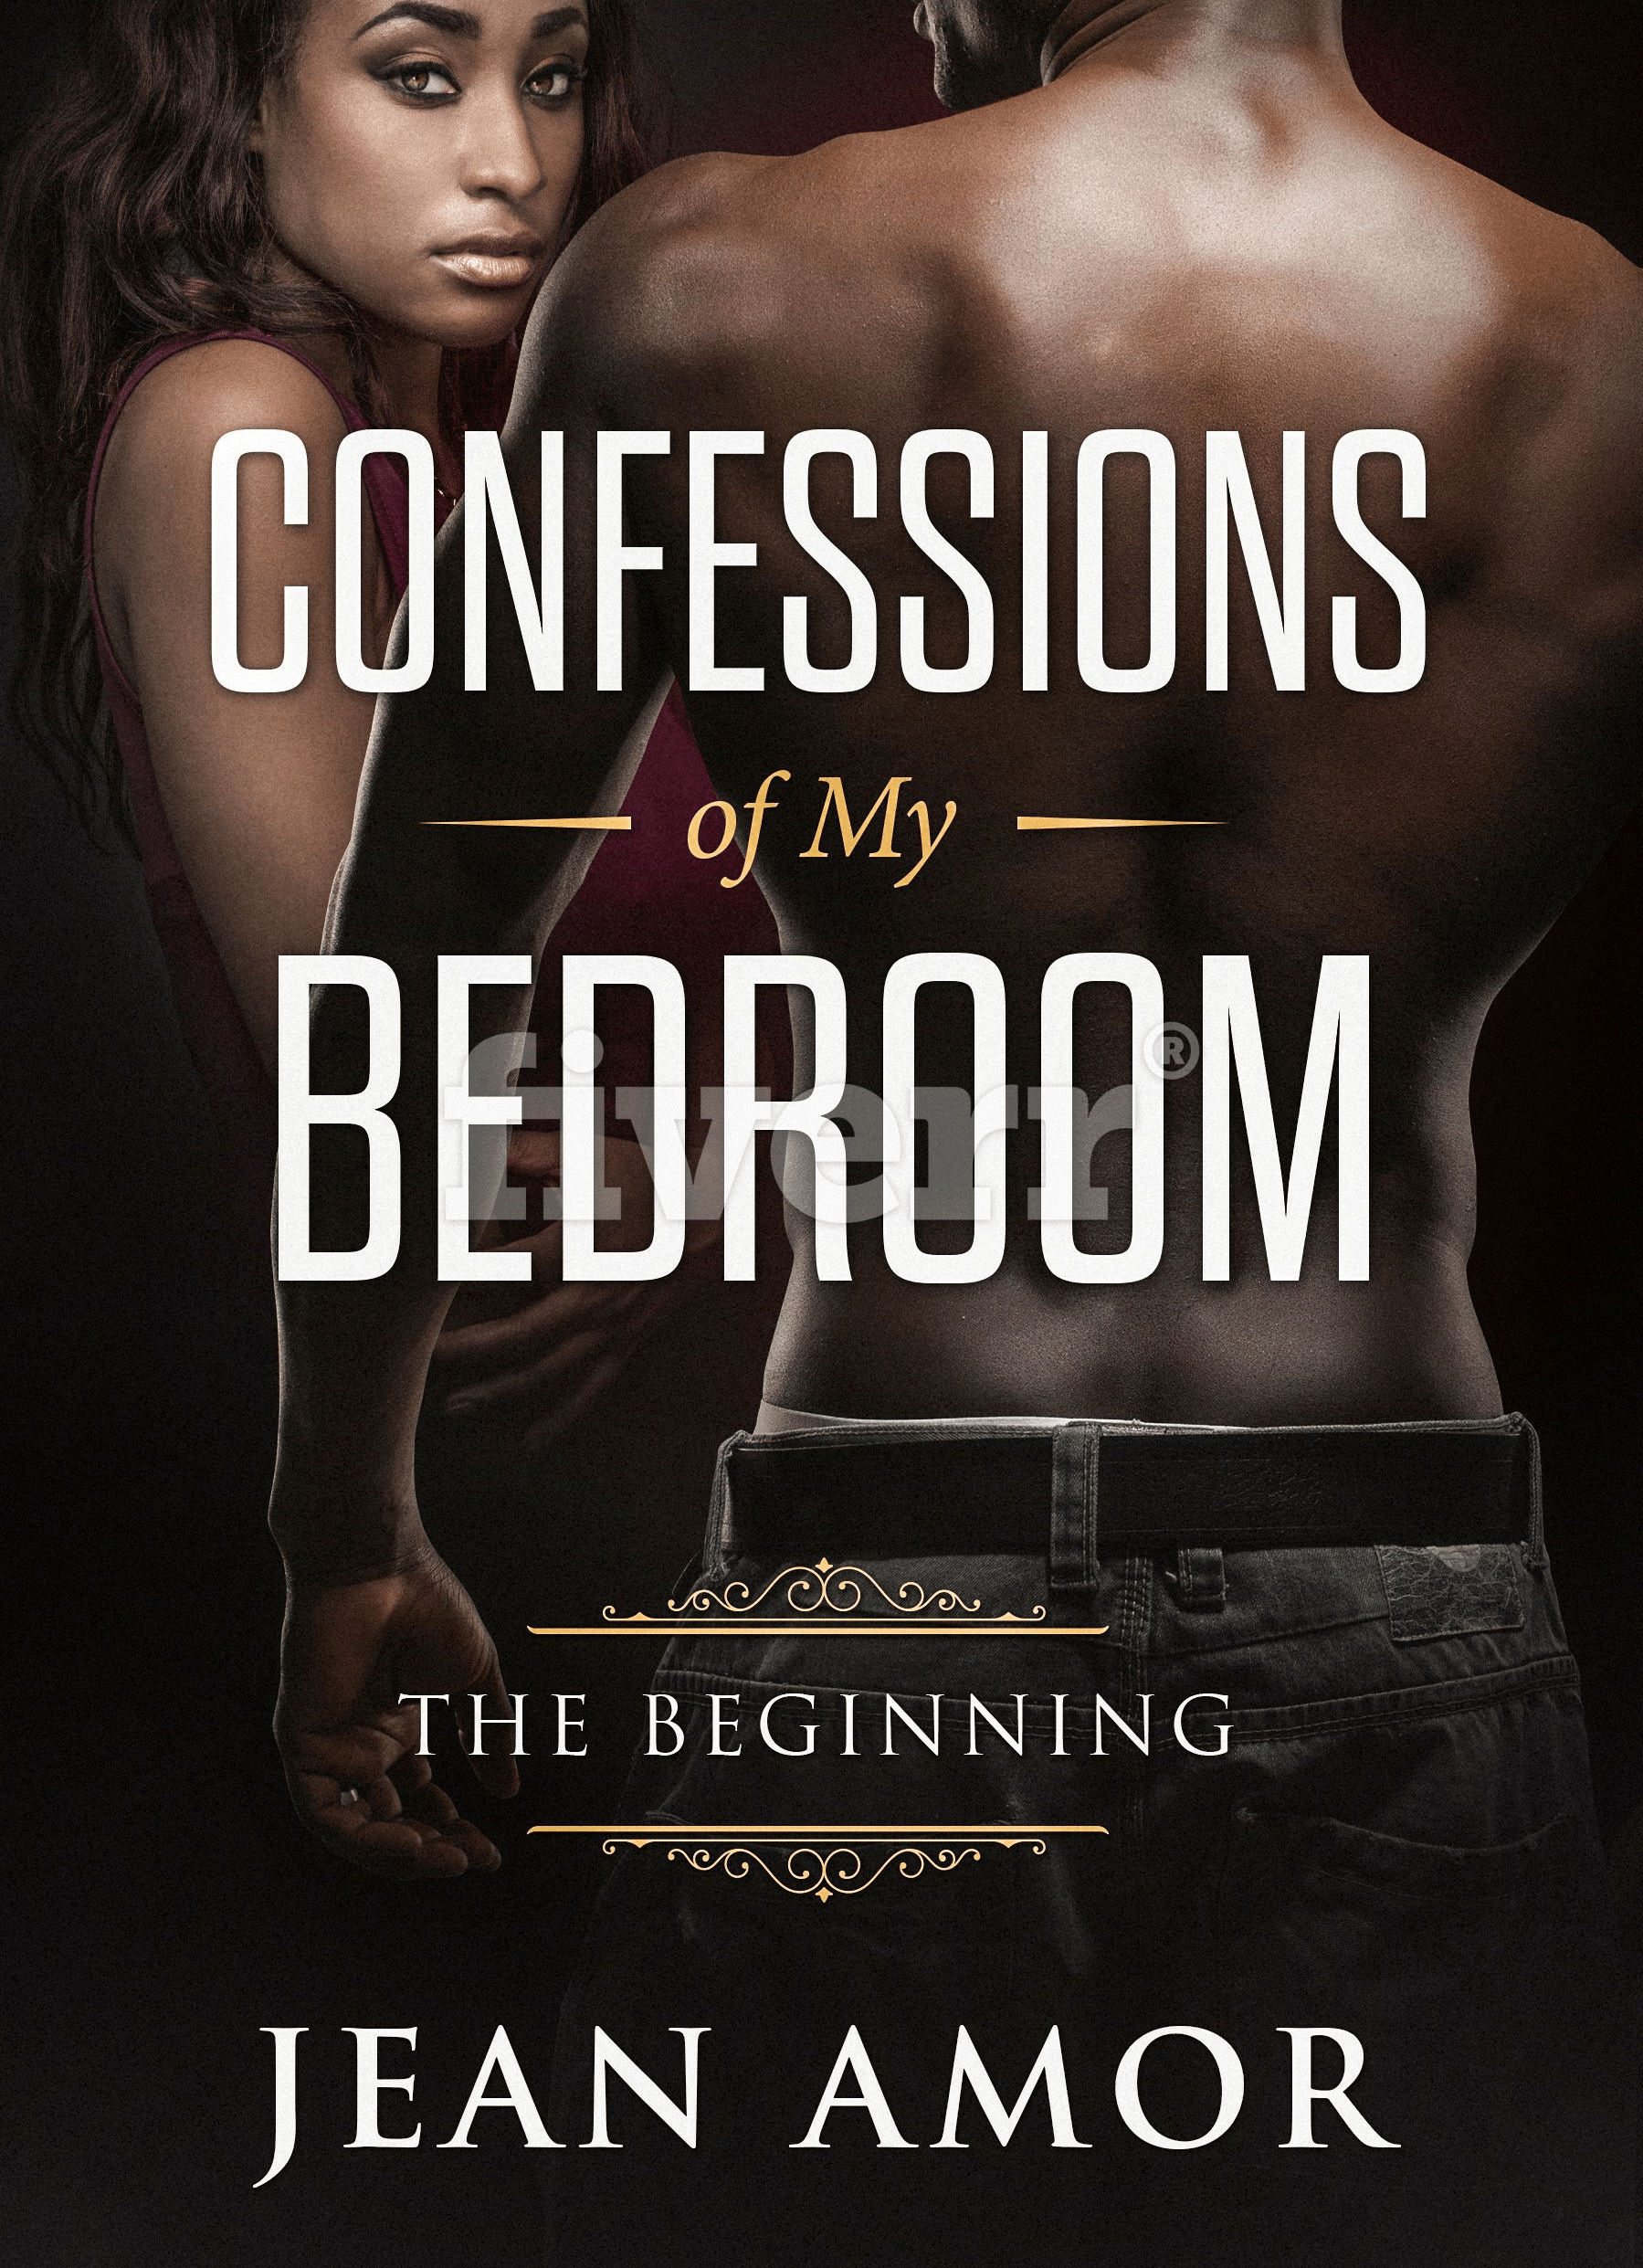 Confessions of my Bedroom: The Beginning